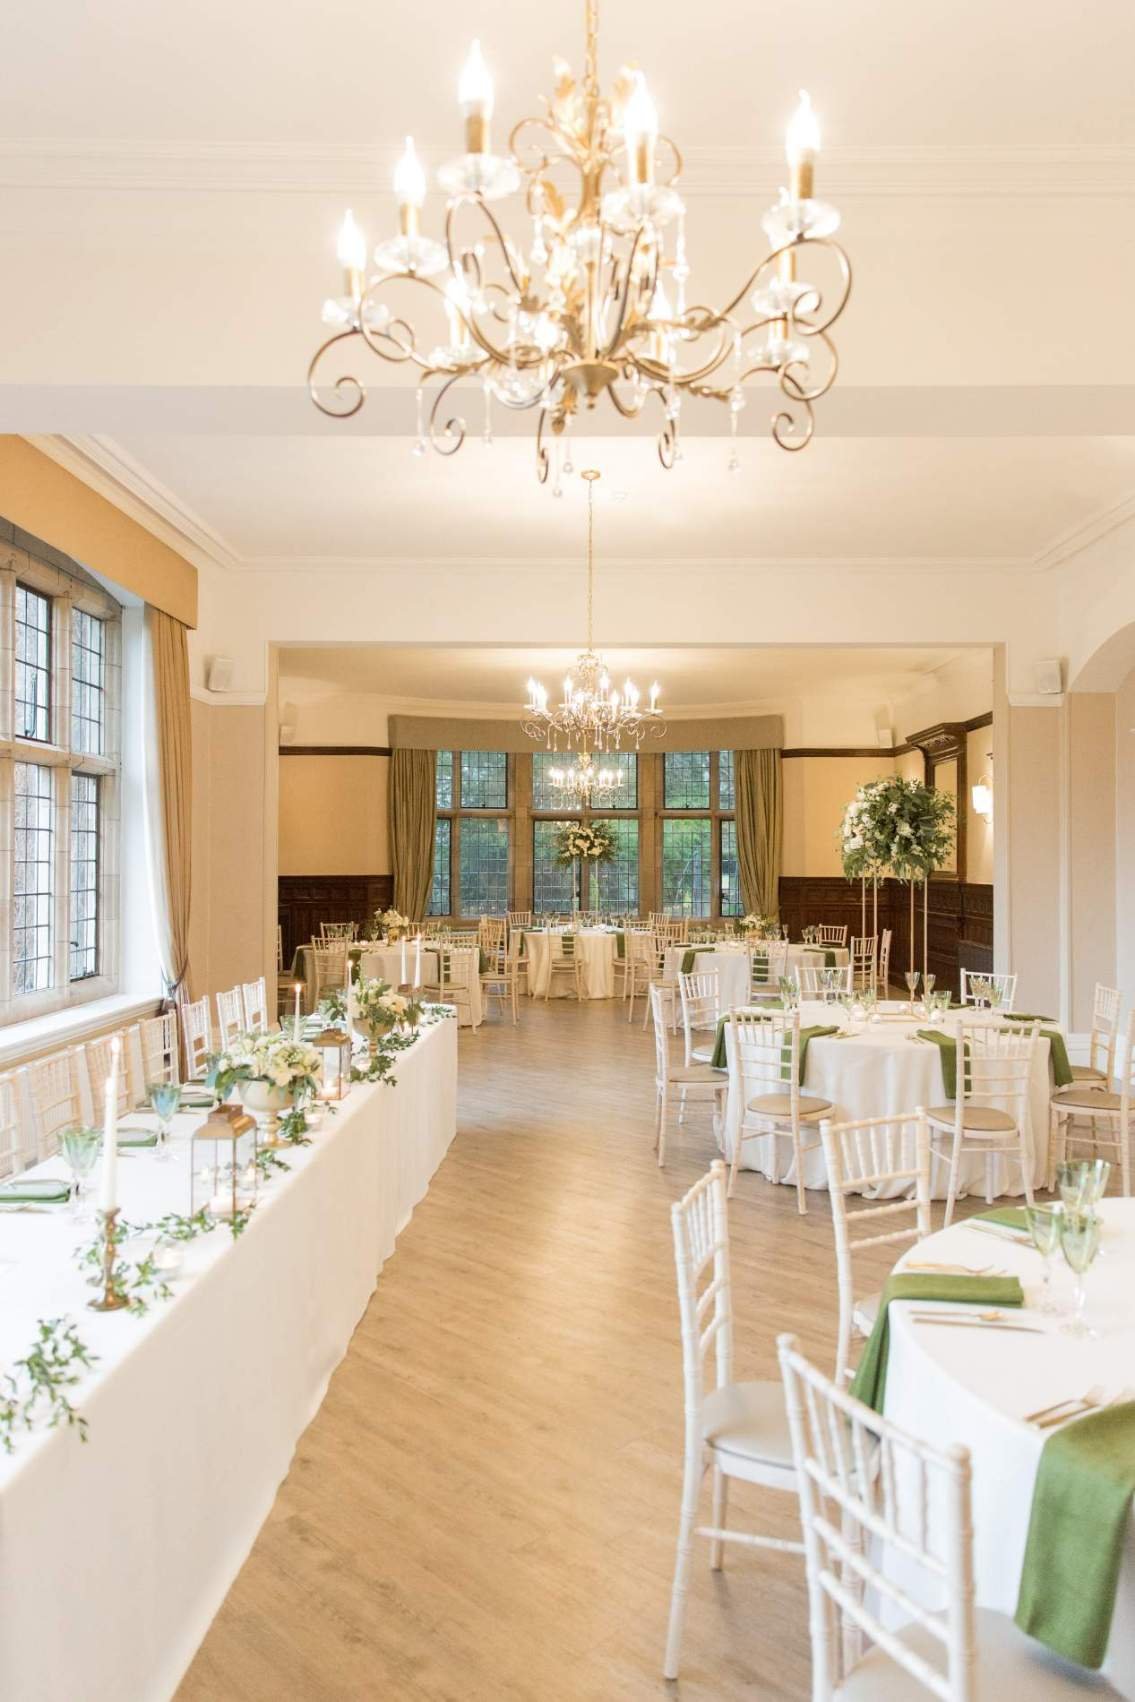 Moxhull-Hall-Sutton-Coldfield-Wedding-Venue-Midlands-0013